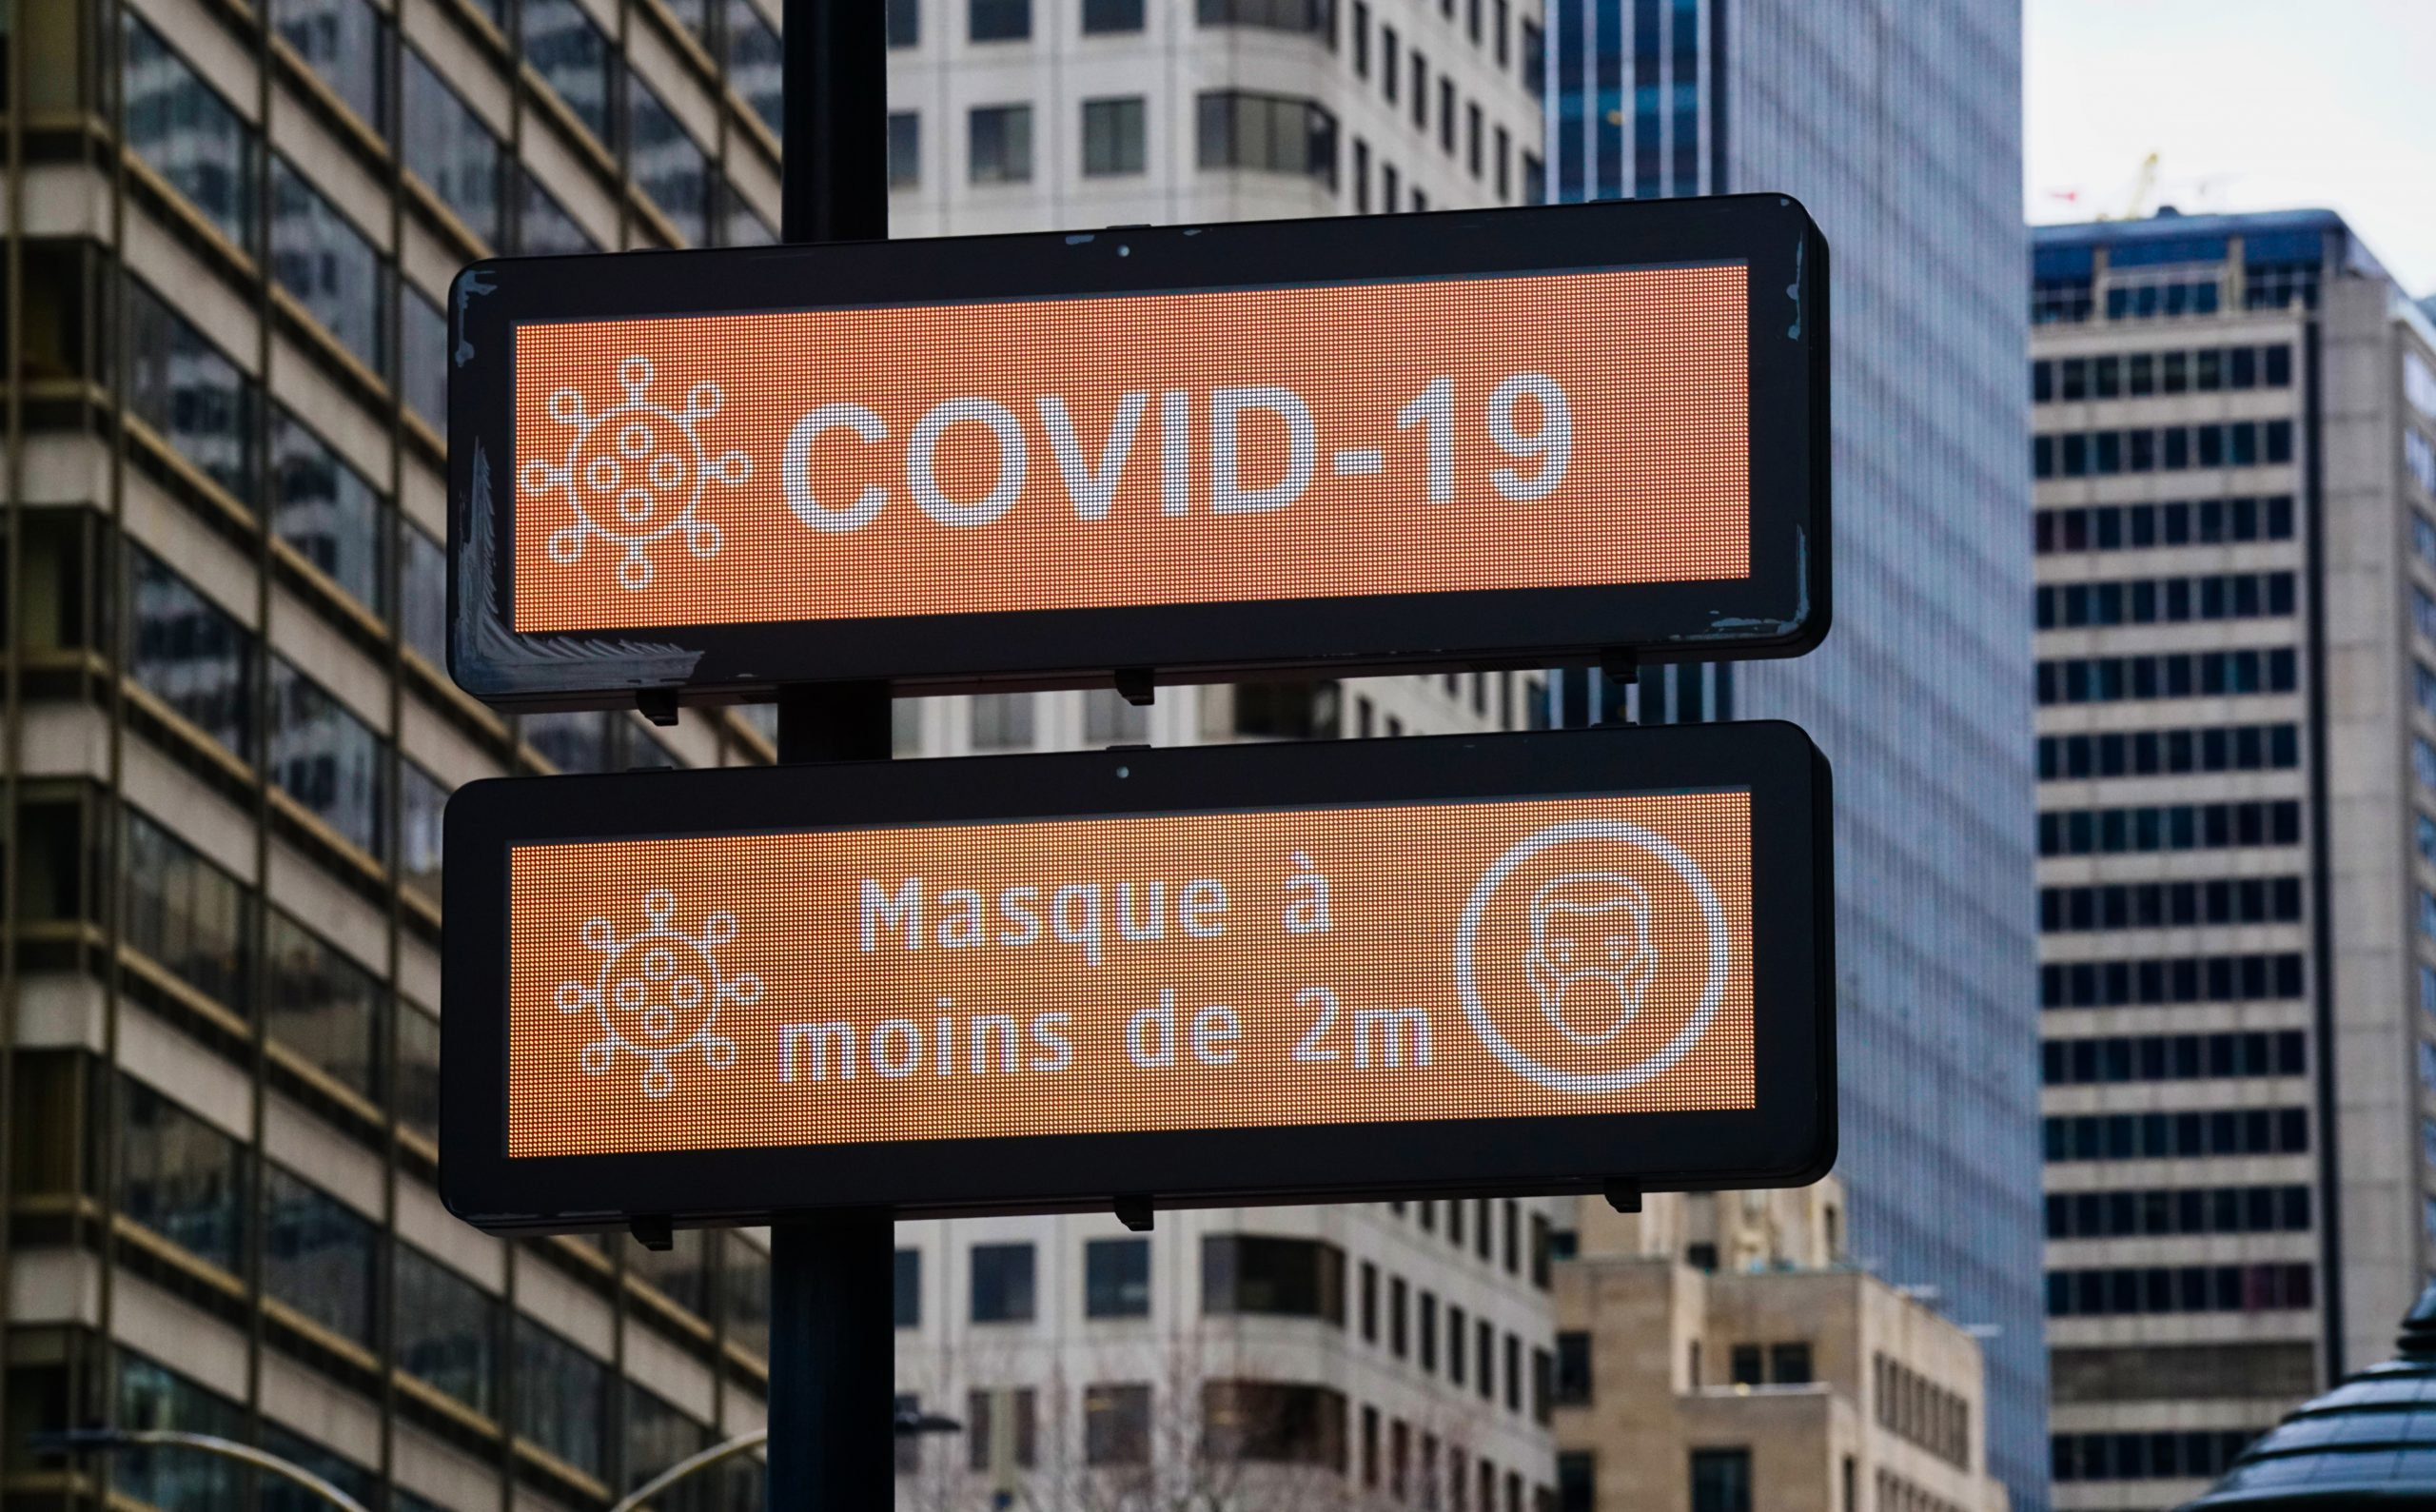 Montréal renews COVID-19 state of emergency